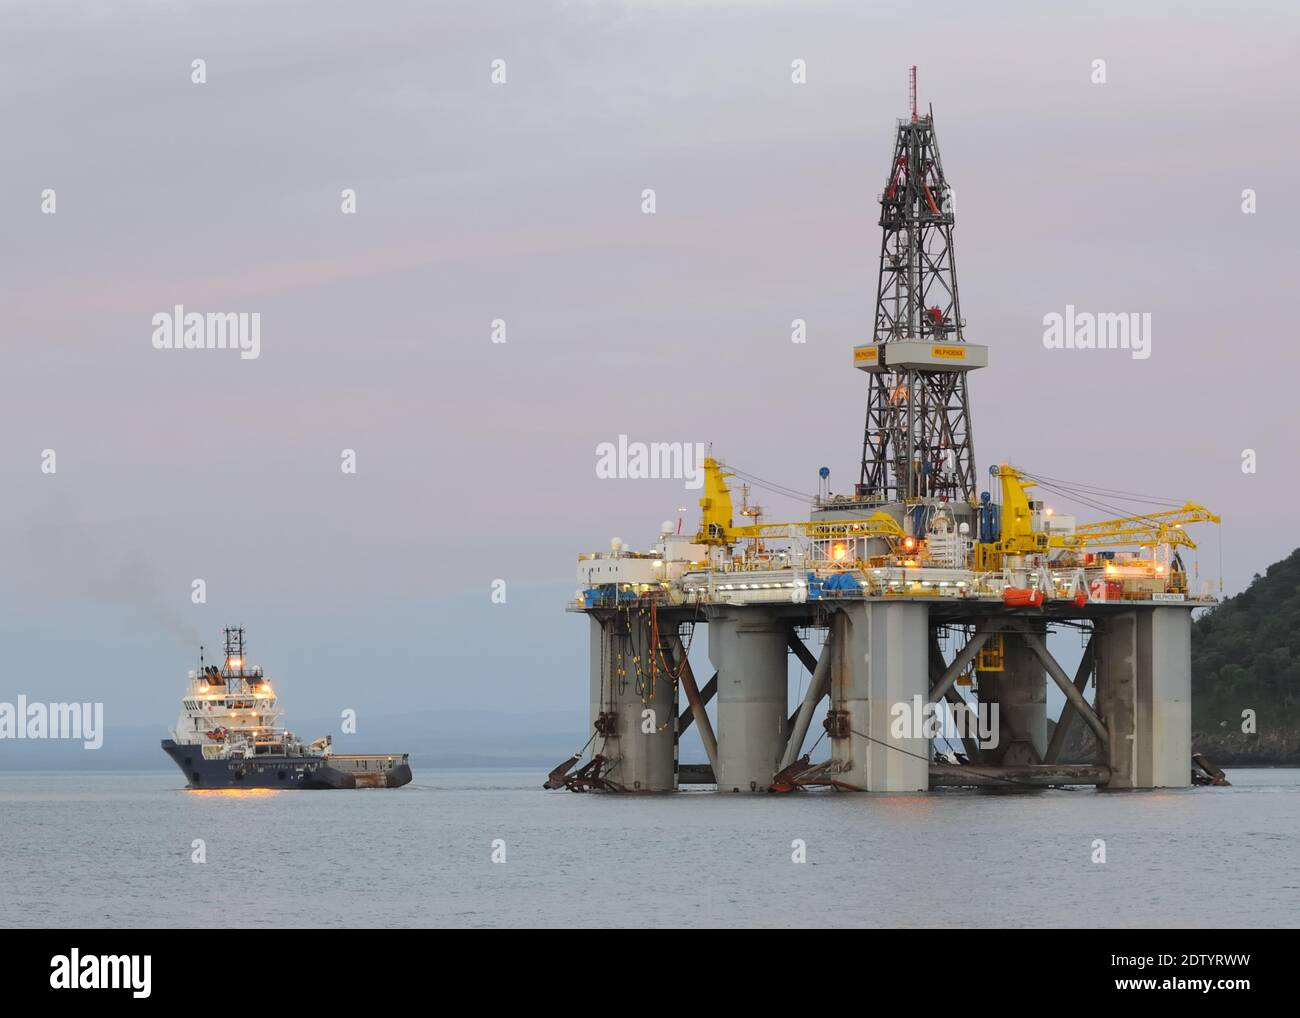 The WilPhoenix is a 3rd-Generation, Enhanced Pacesetter, Harsh-Environment, Mid-Water, Semi-Submersible Drilling Rig being towed from Cromarty Firth Stock Photo